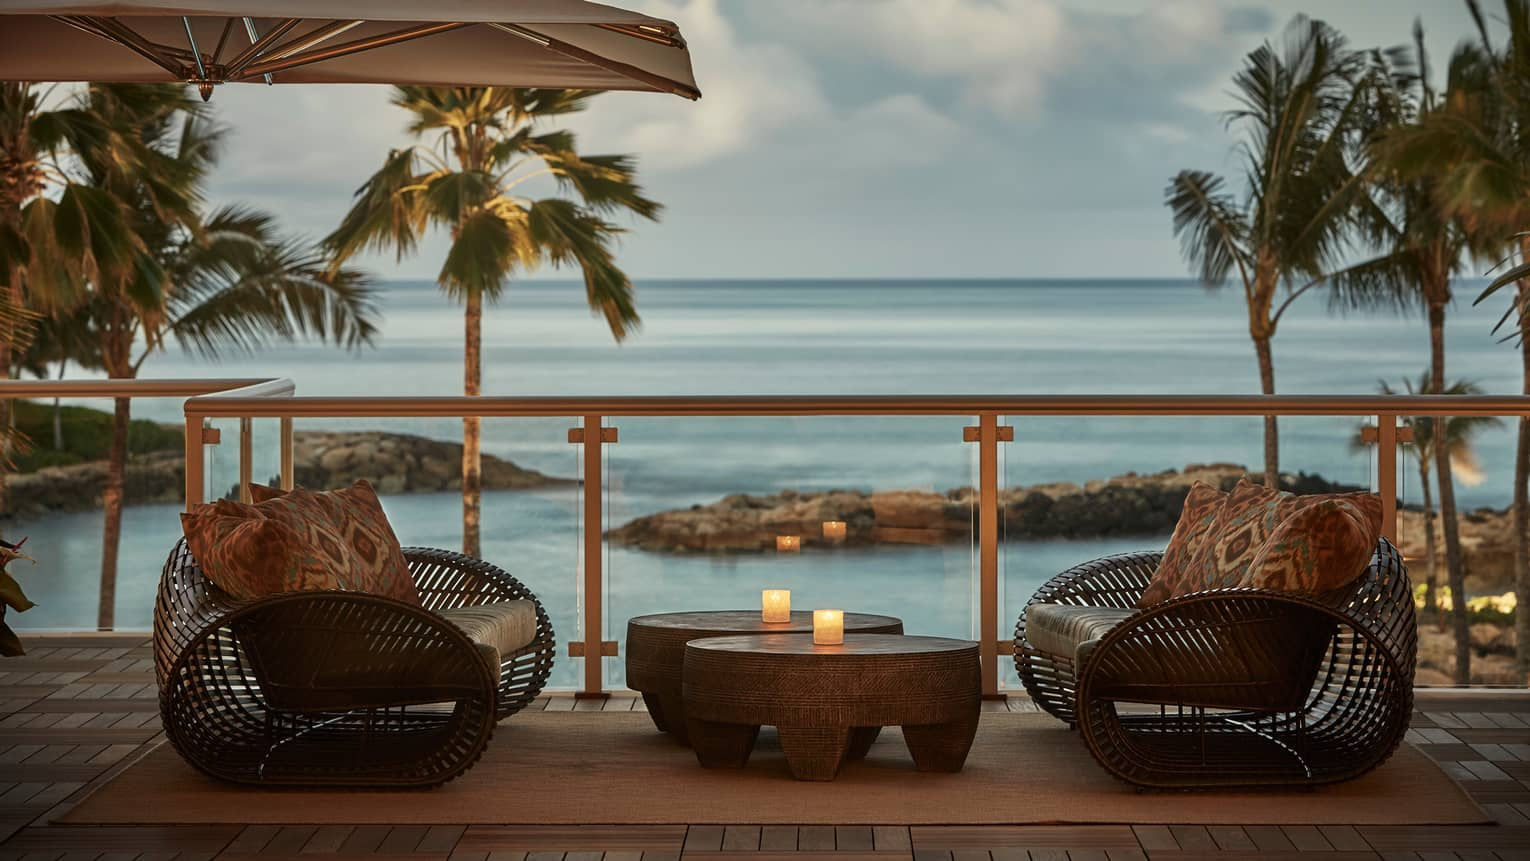 Large rattan chairs with print pillows, table with candles on Hokulea patio at sunset